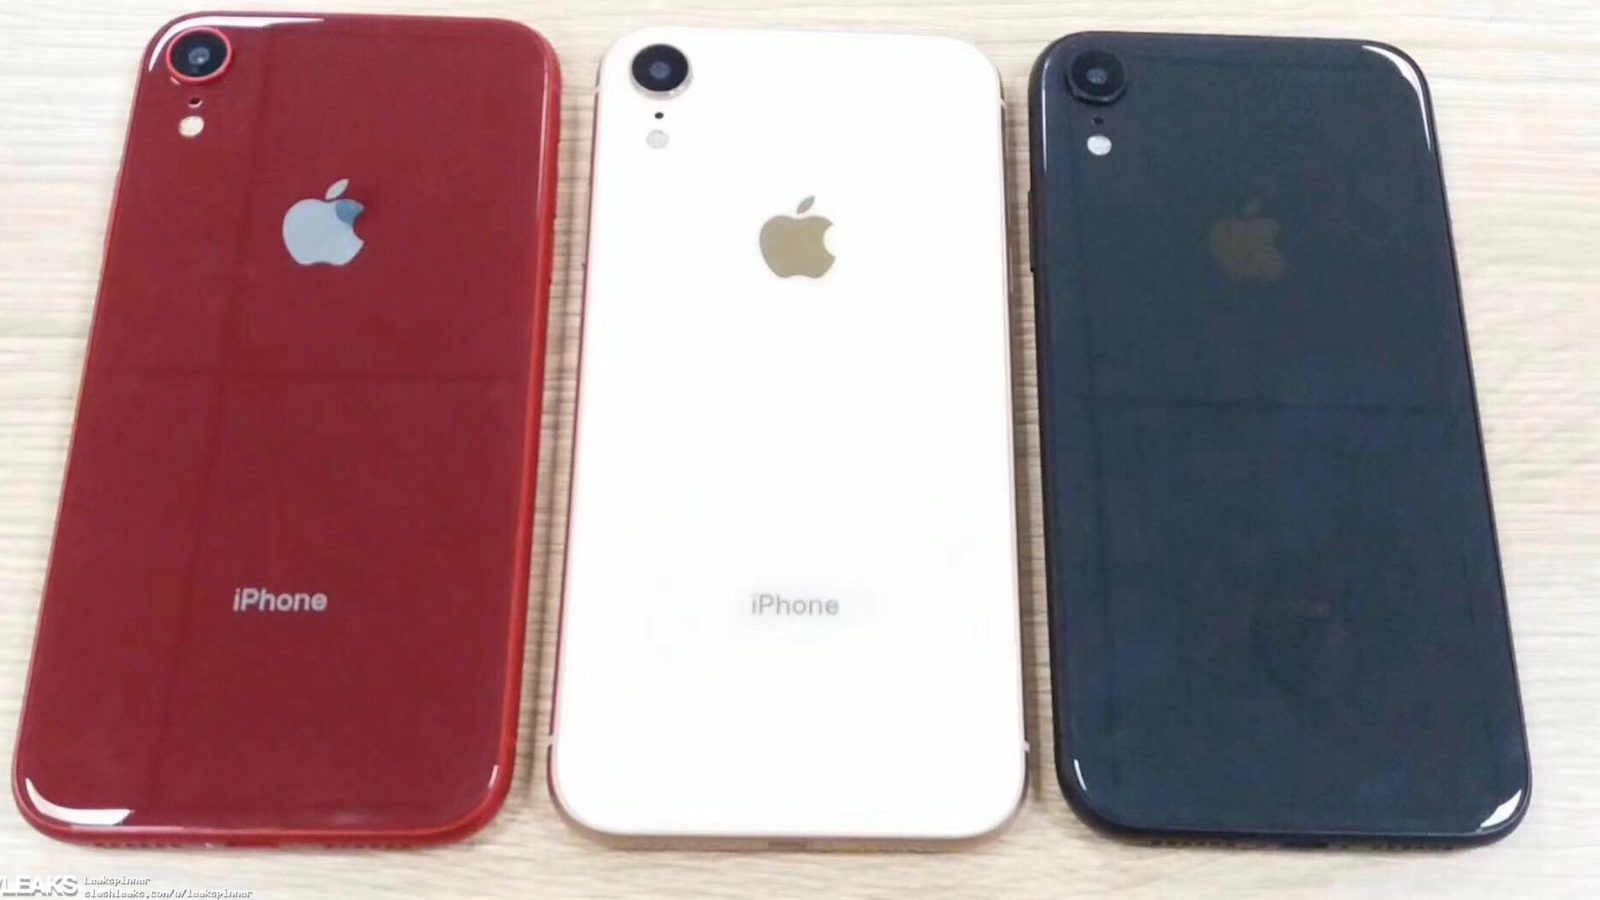 Leaked Iphone Xc Prototype Images Claim To Show New Color Options Click Here For A Photograph Of The Dual Sim More